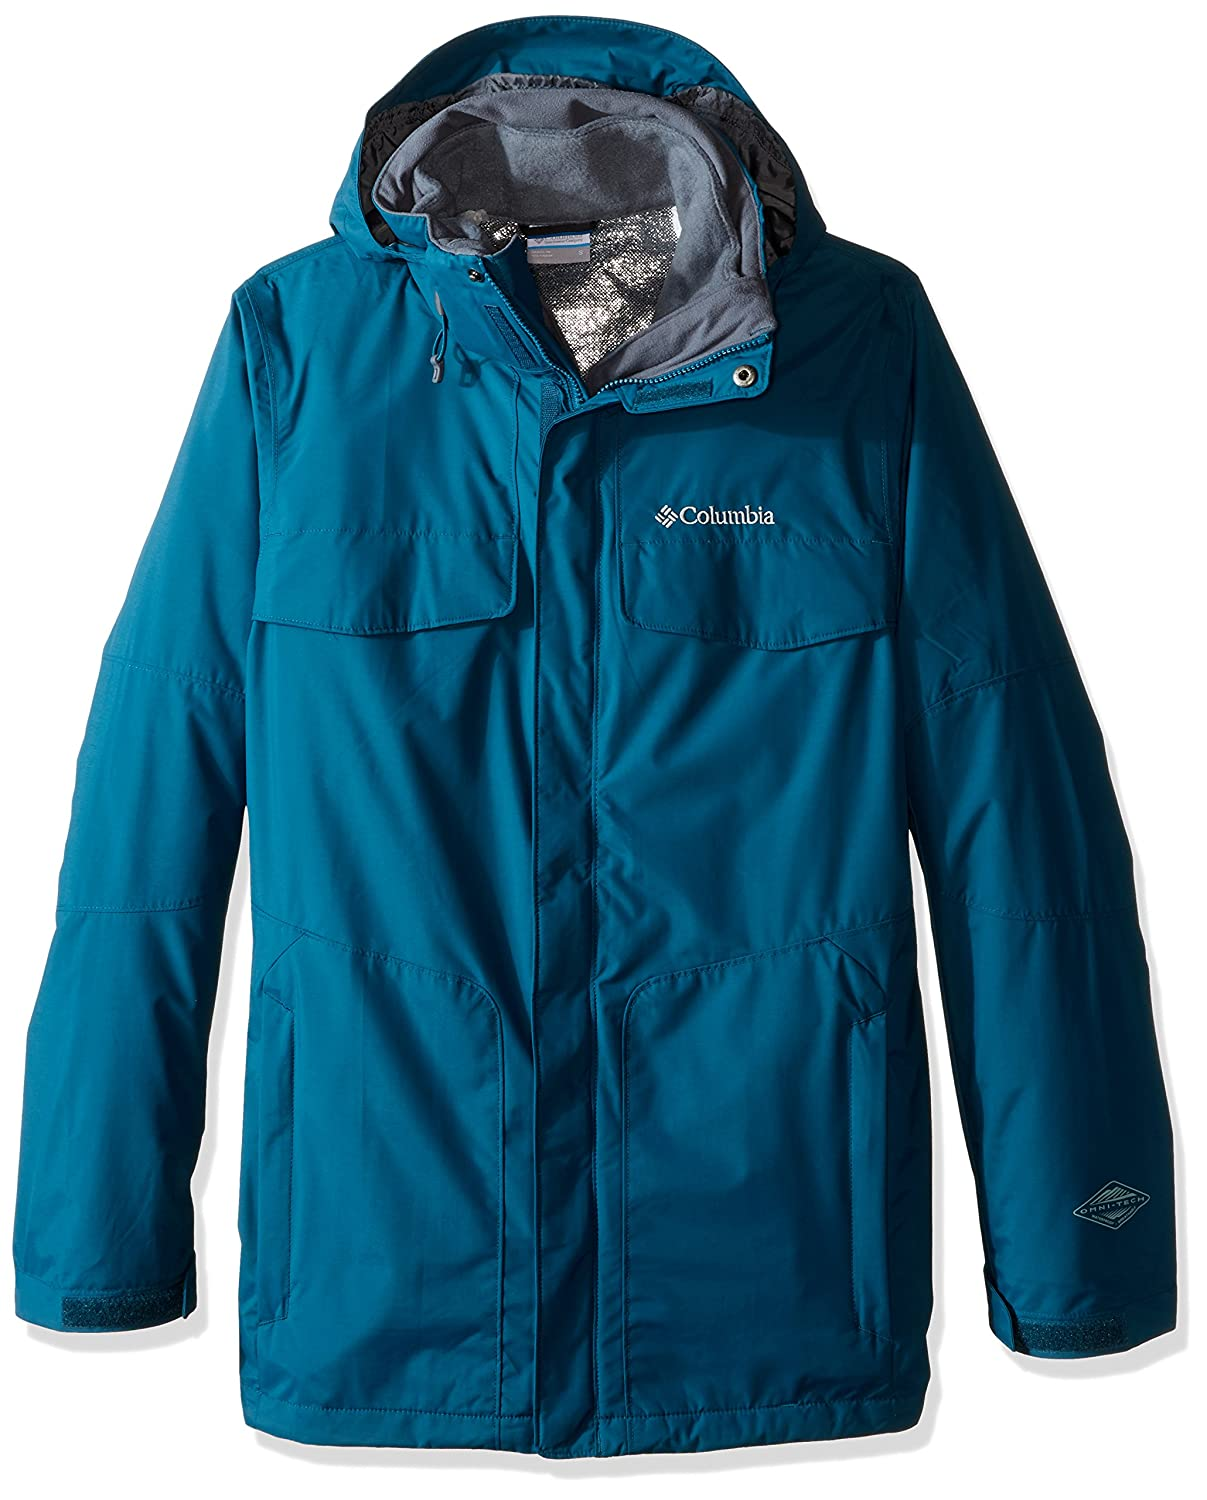 Columbia Men's Bugaboo Interchange Jacket Columbia (Sporting Goods) 1561181